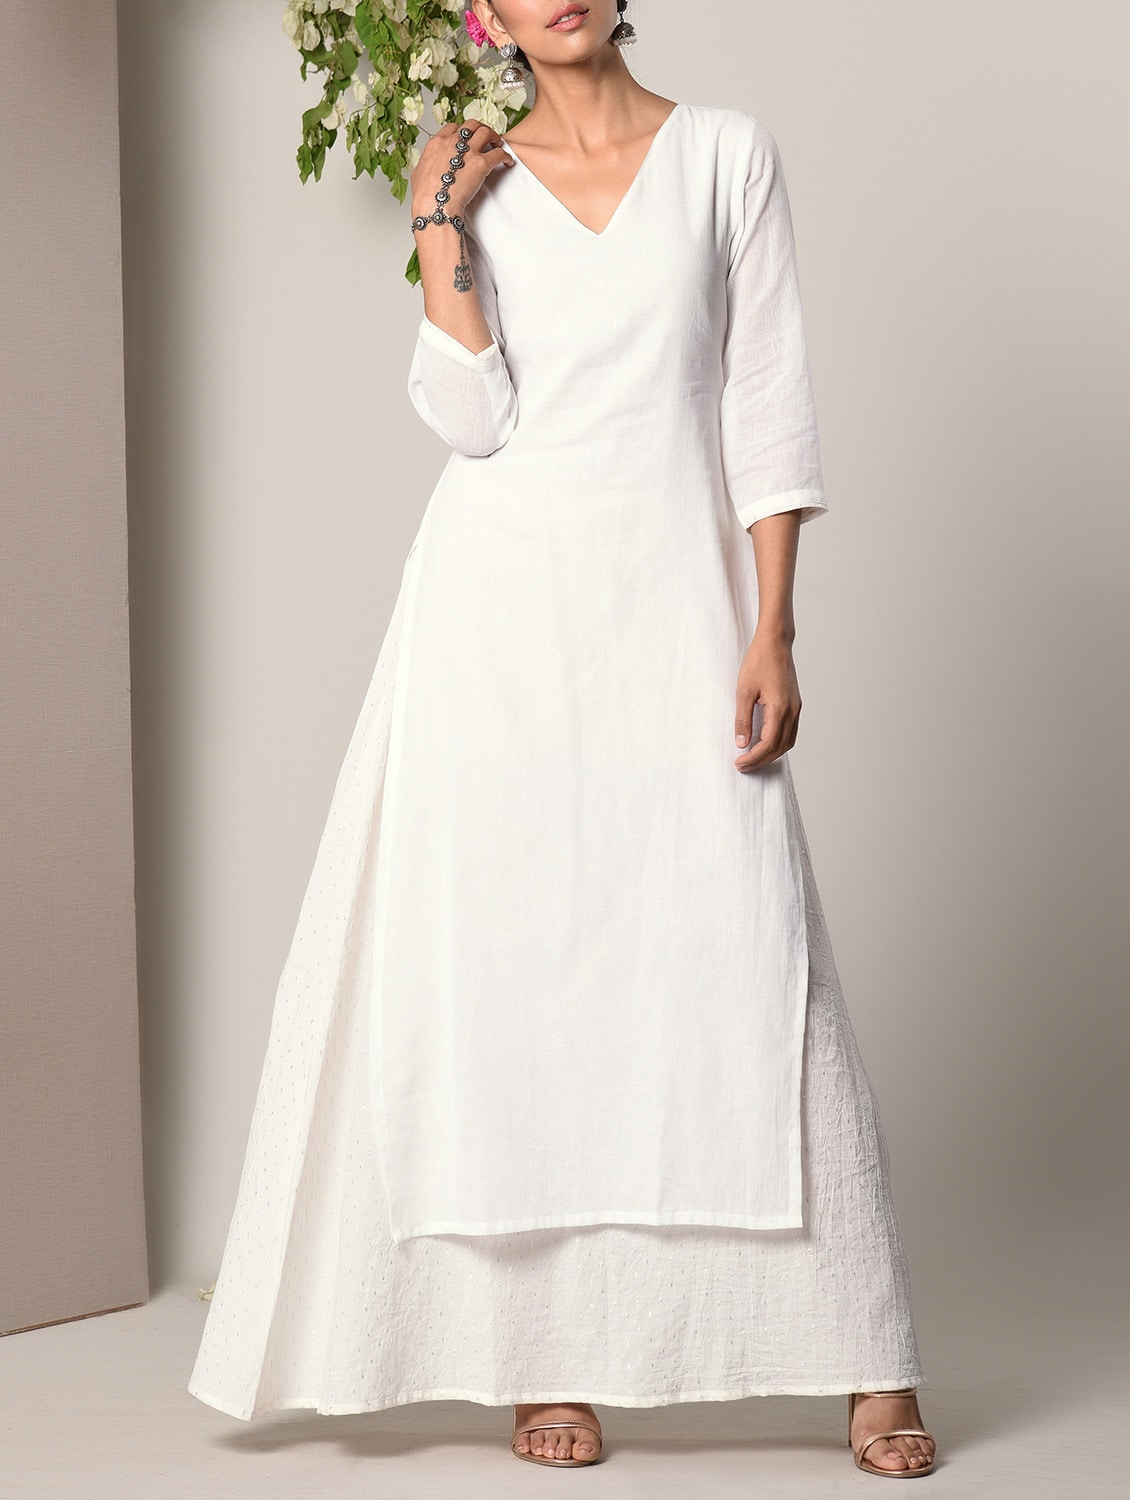 Buy White Layered Cotton Maxi Dress by Truebrowns - Online shopping for  Dresses in India  b55a2099c